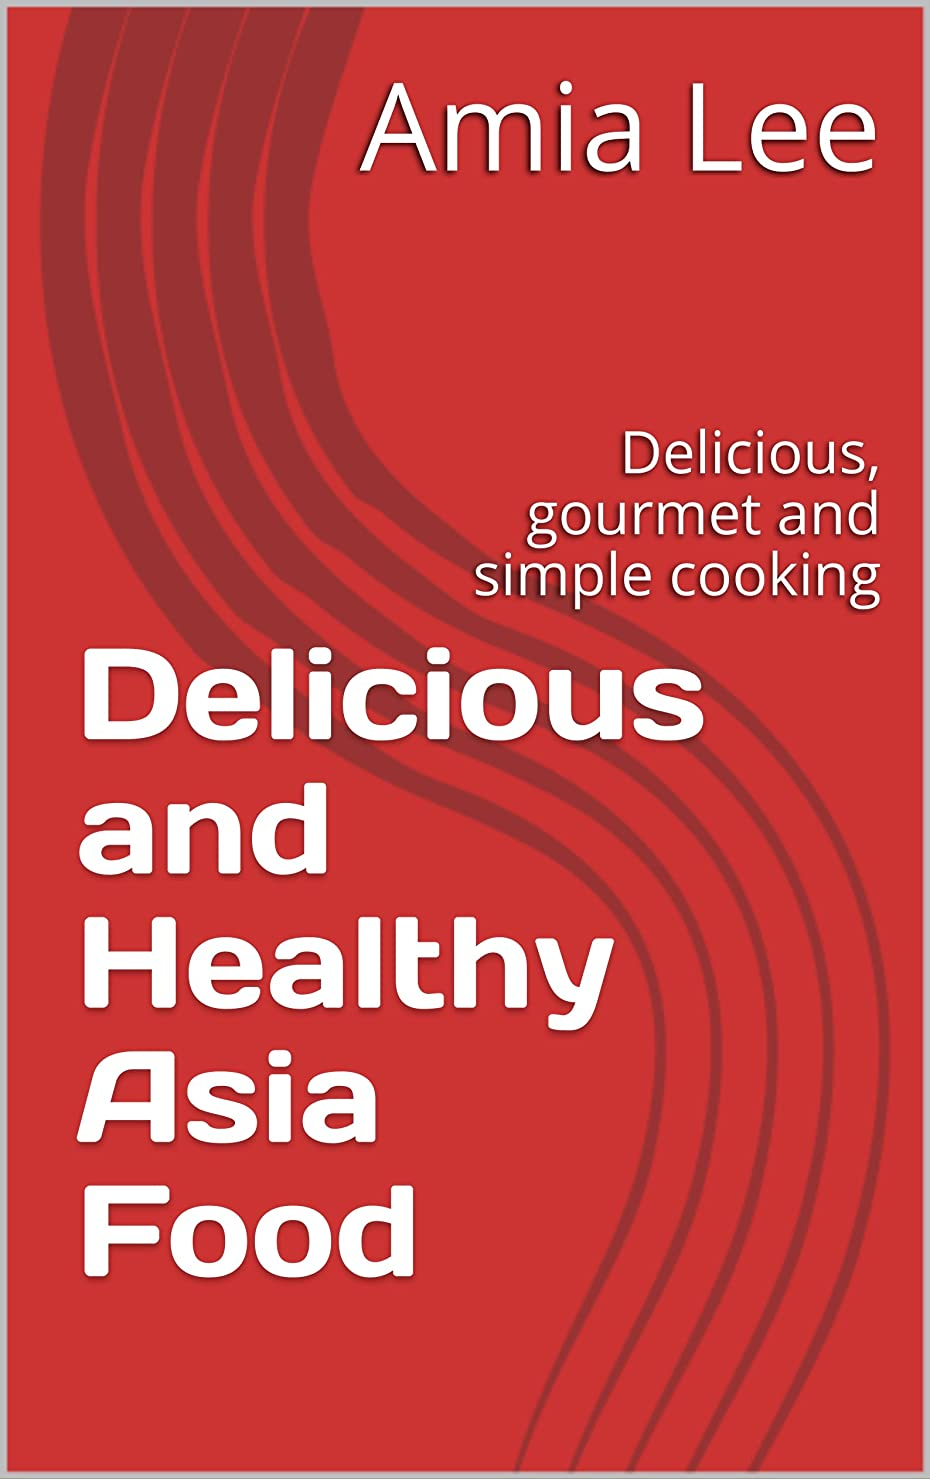 Delicious and Healthy Asia Food : Delicious, gourmet and simple cooking (Healthy Cooking Book 1) (English Edition)